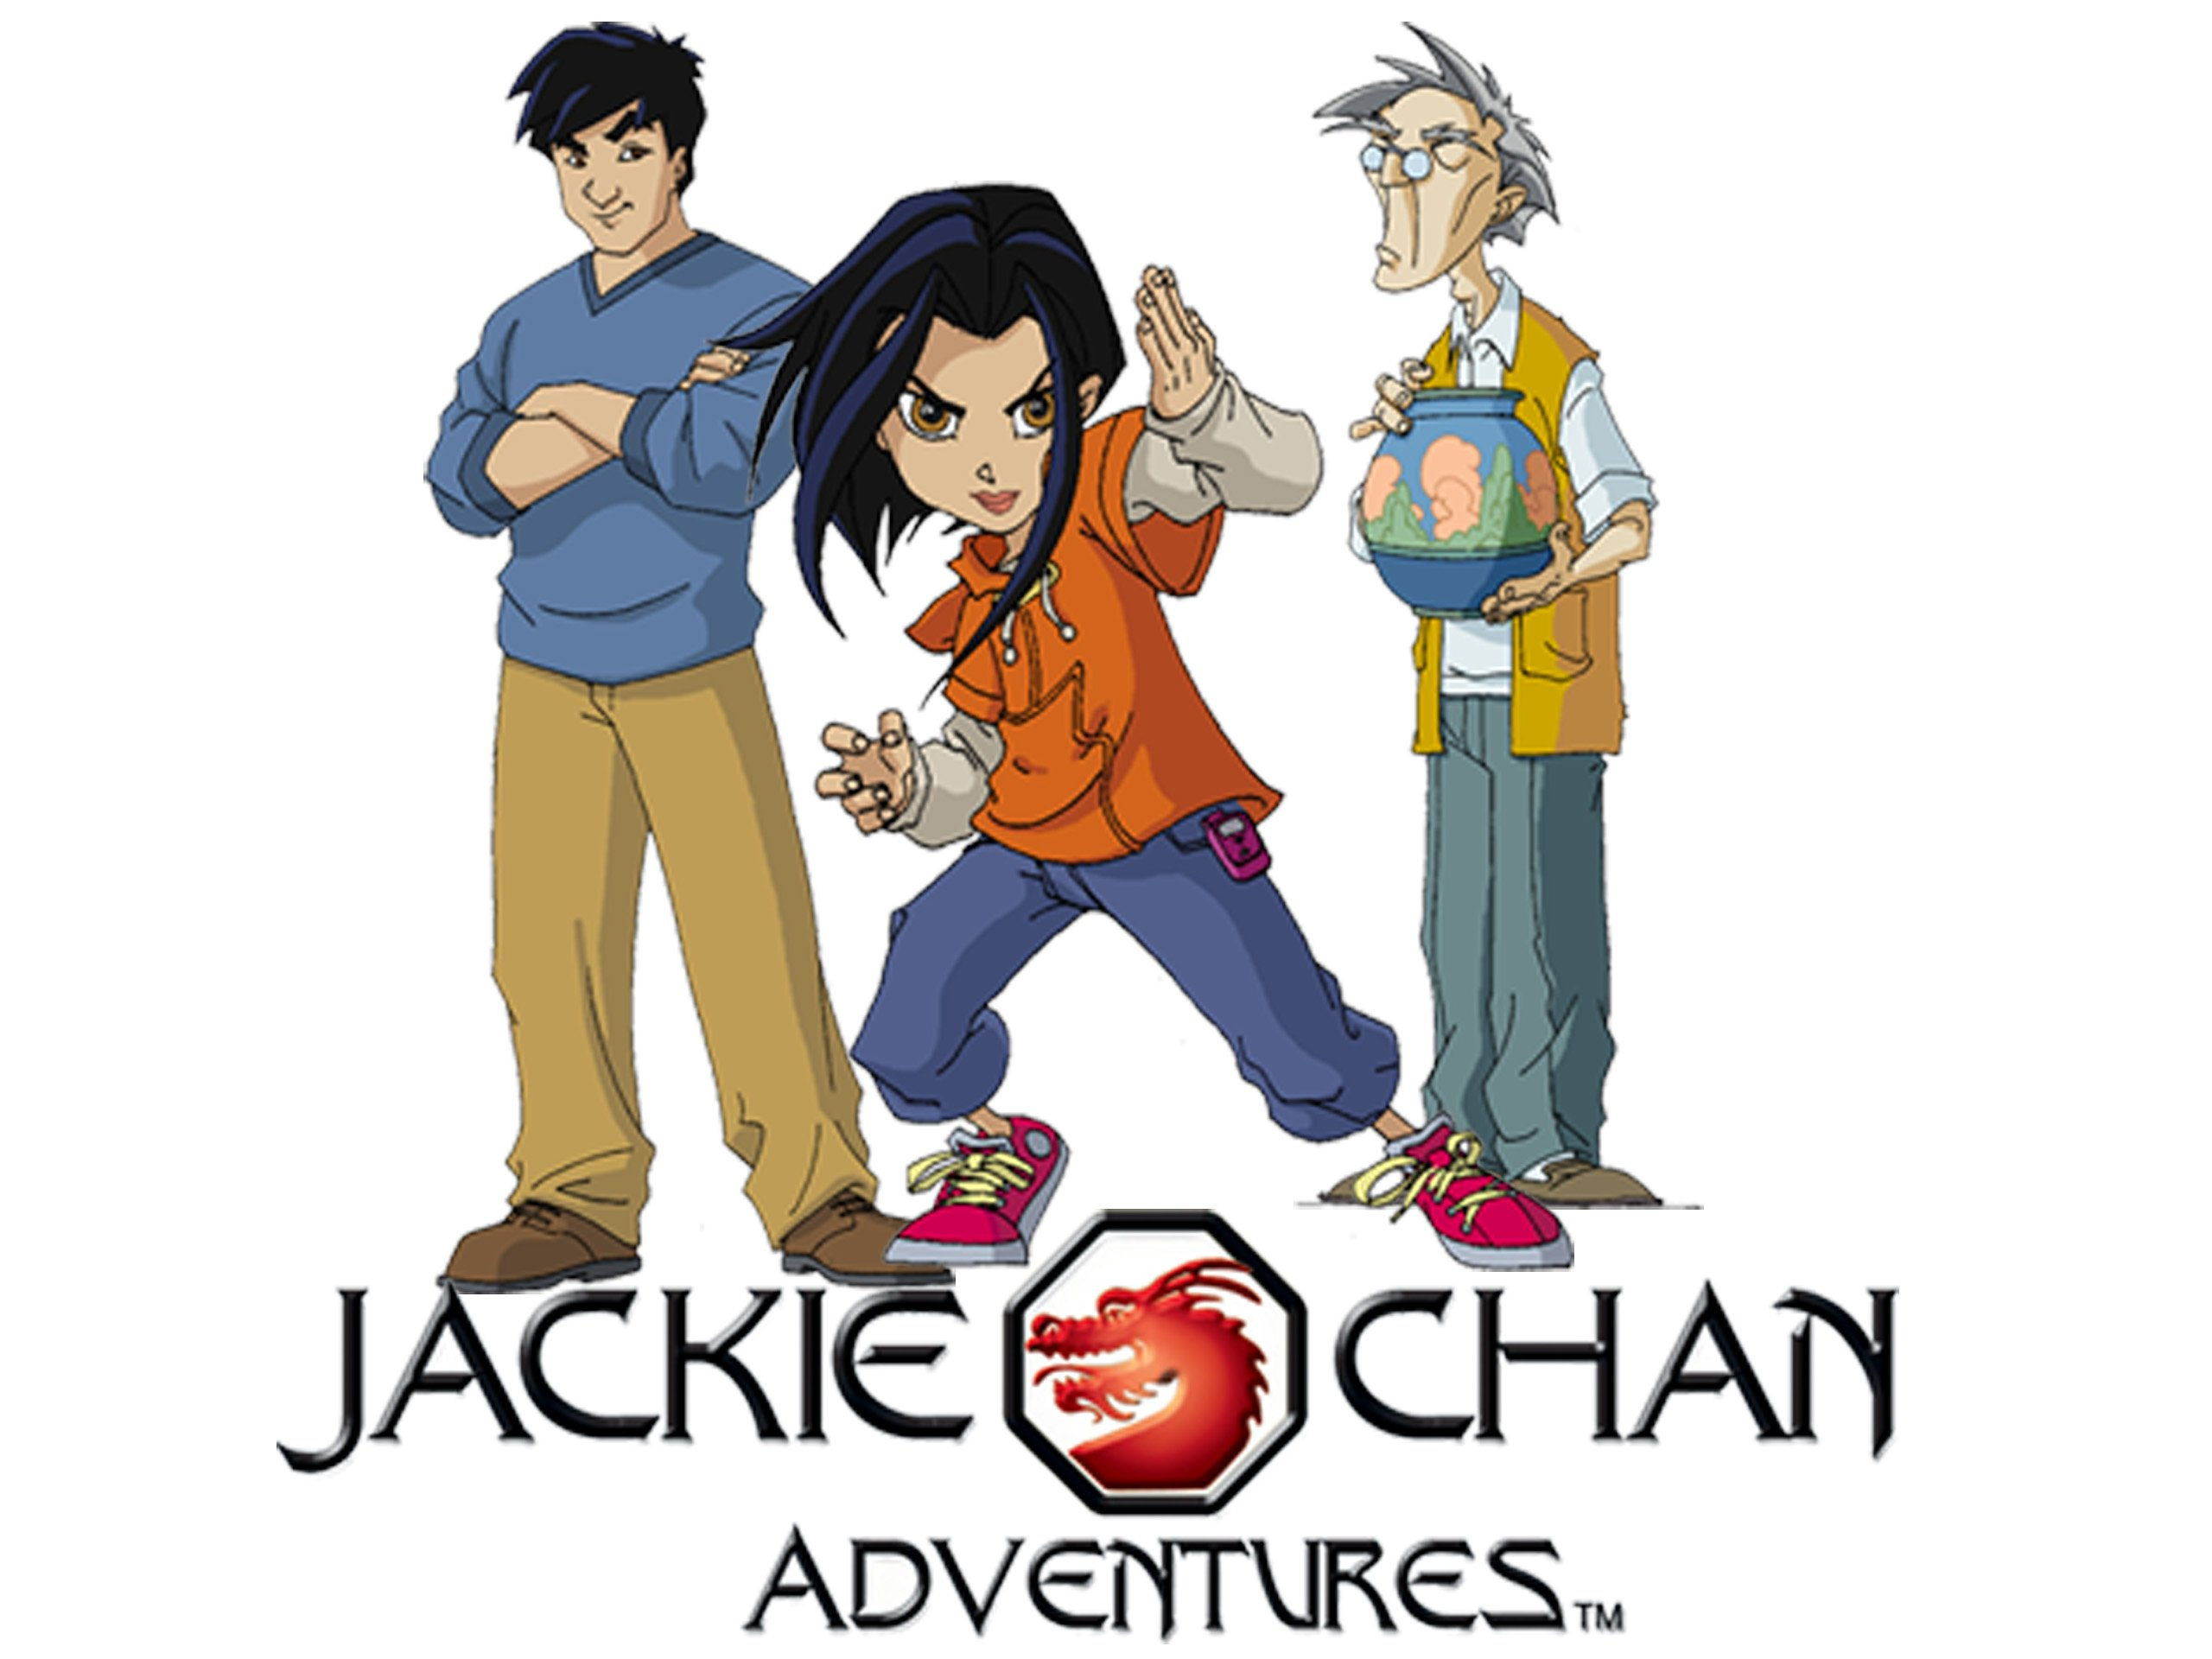 Jackie Chan Adventures hdclipartall.com